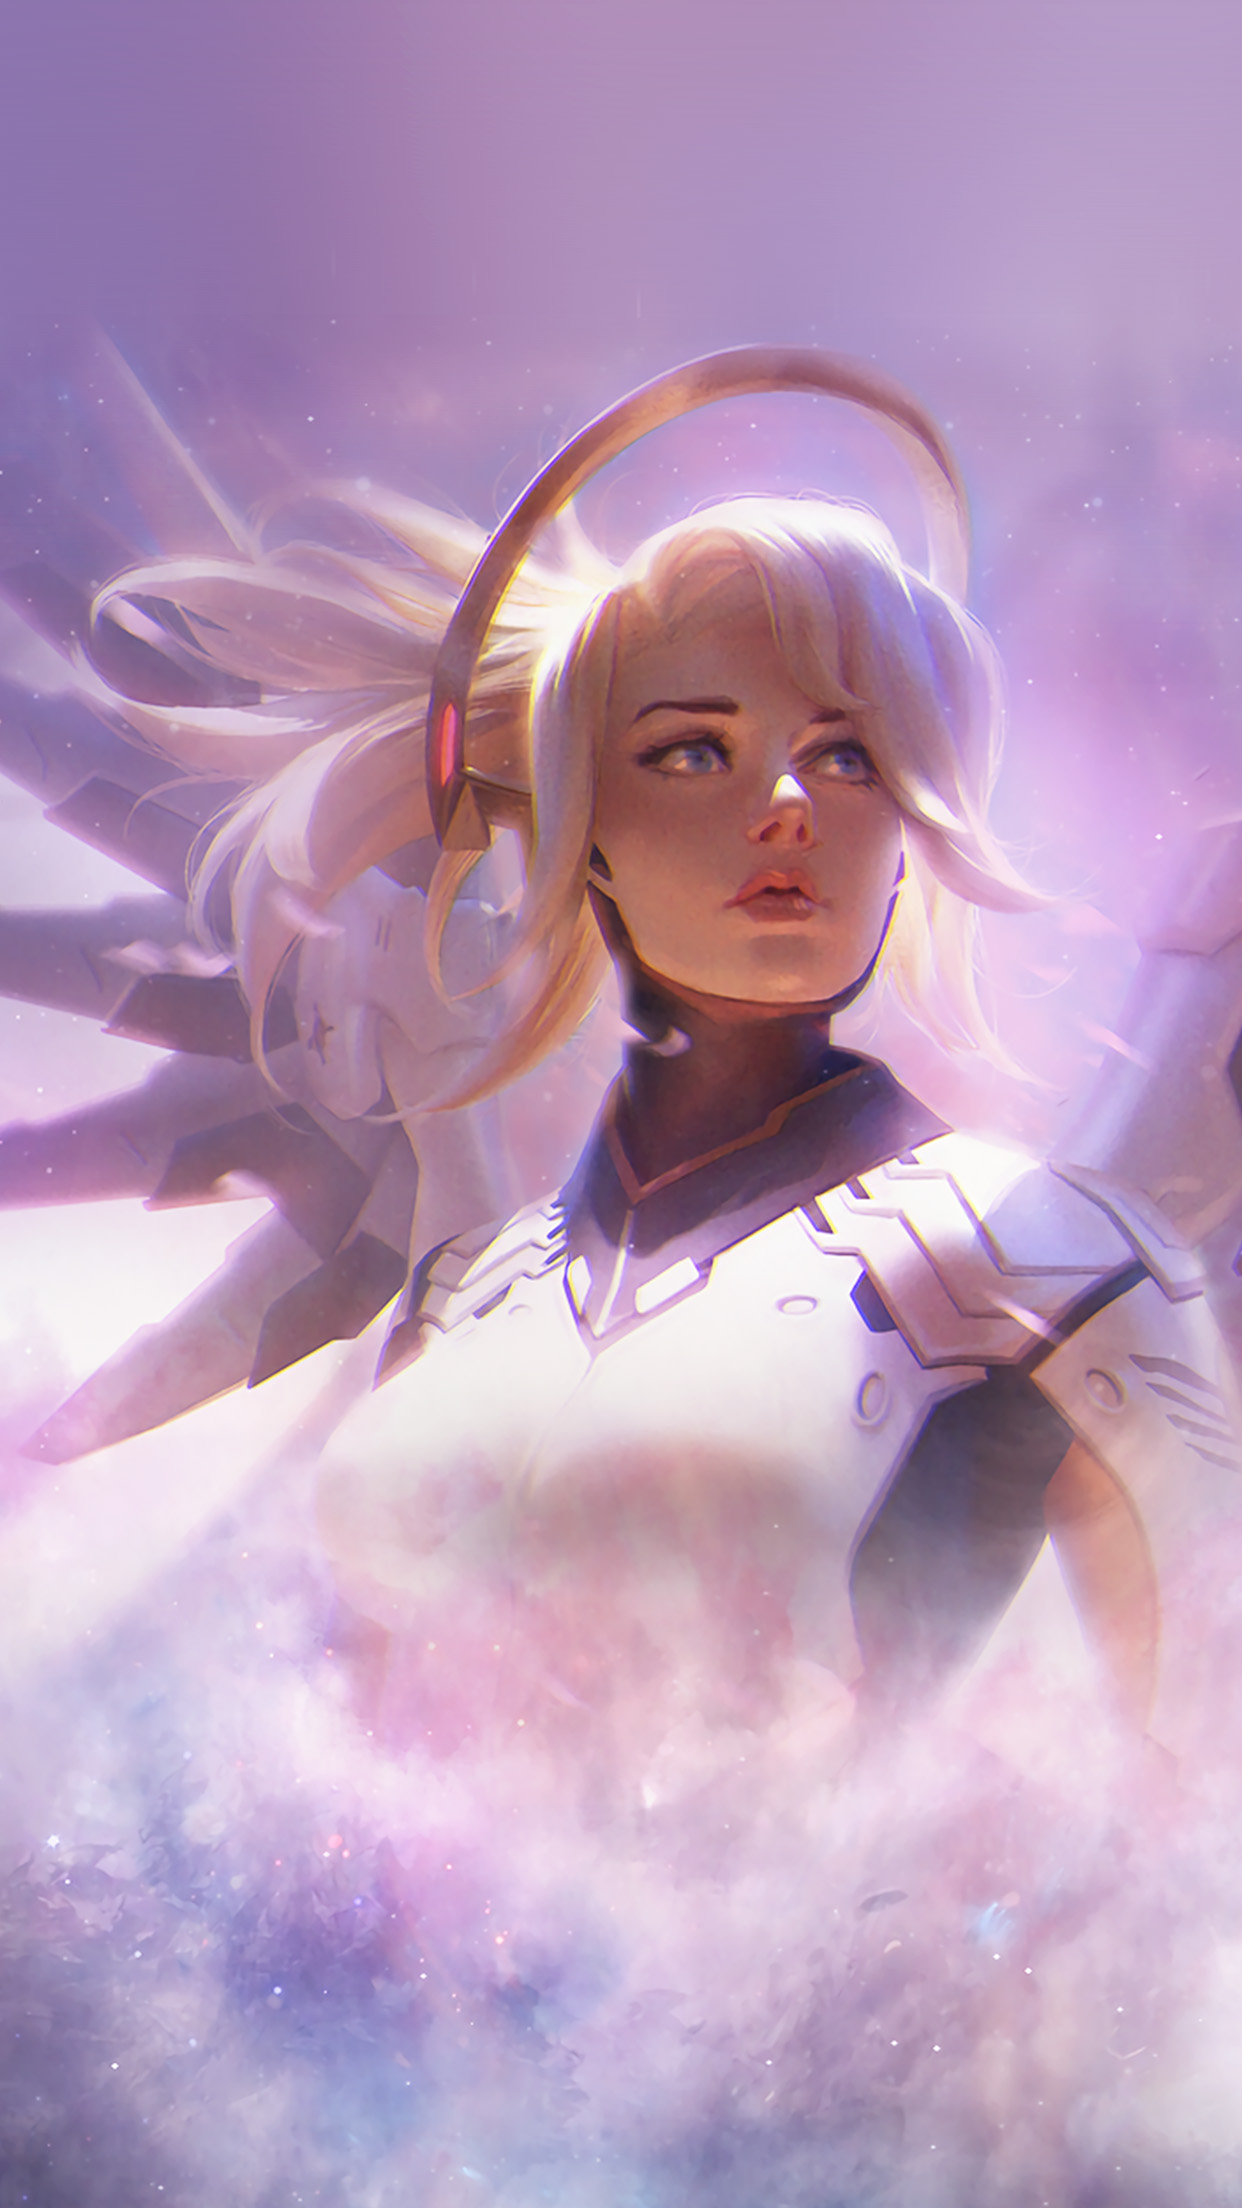 I Love Papers As12 Mercy Overwatch Game Art Illustration